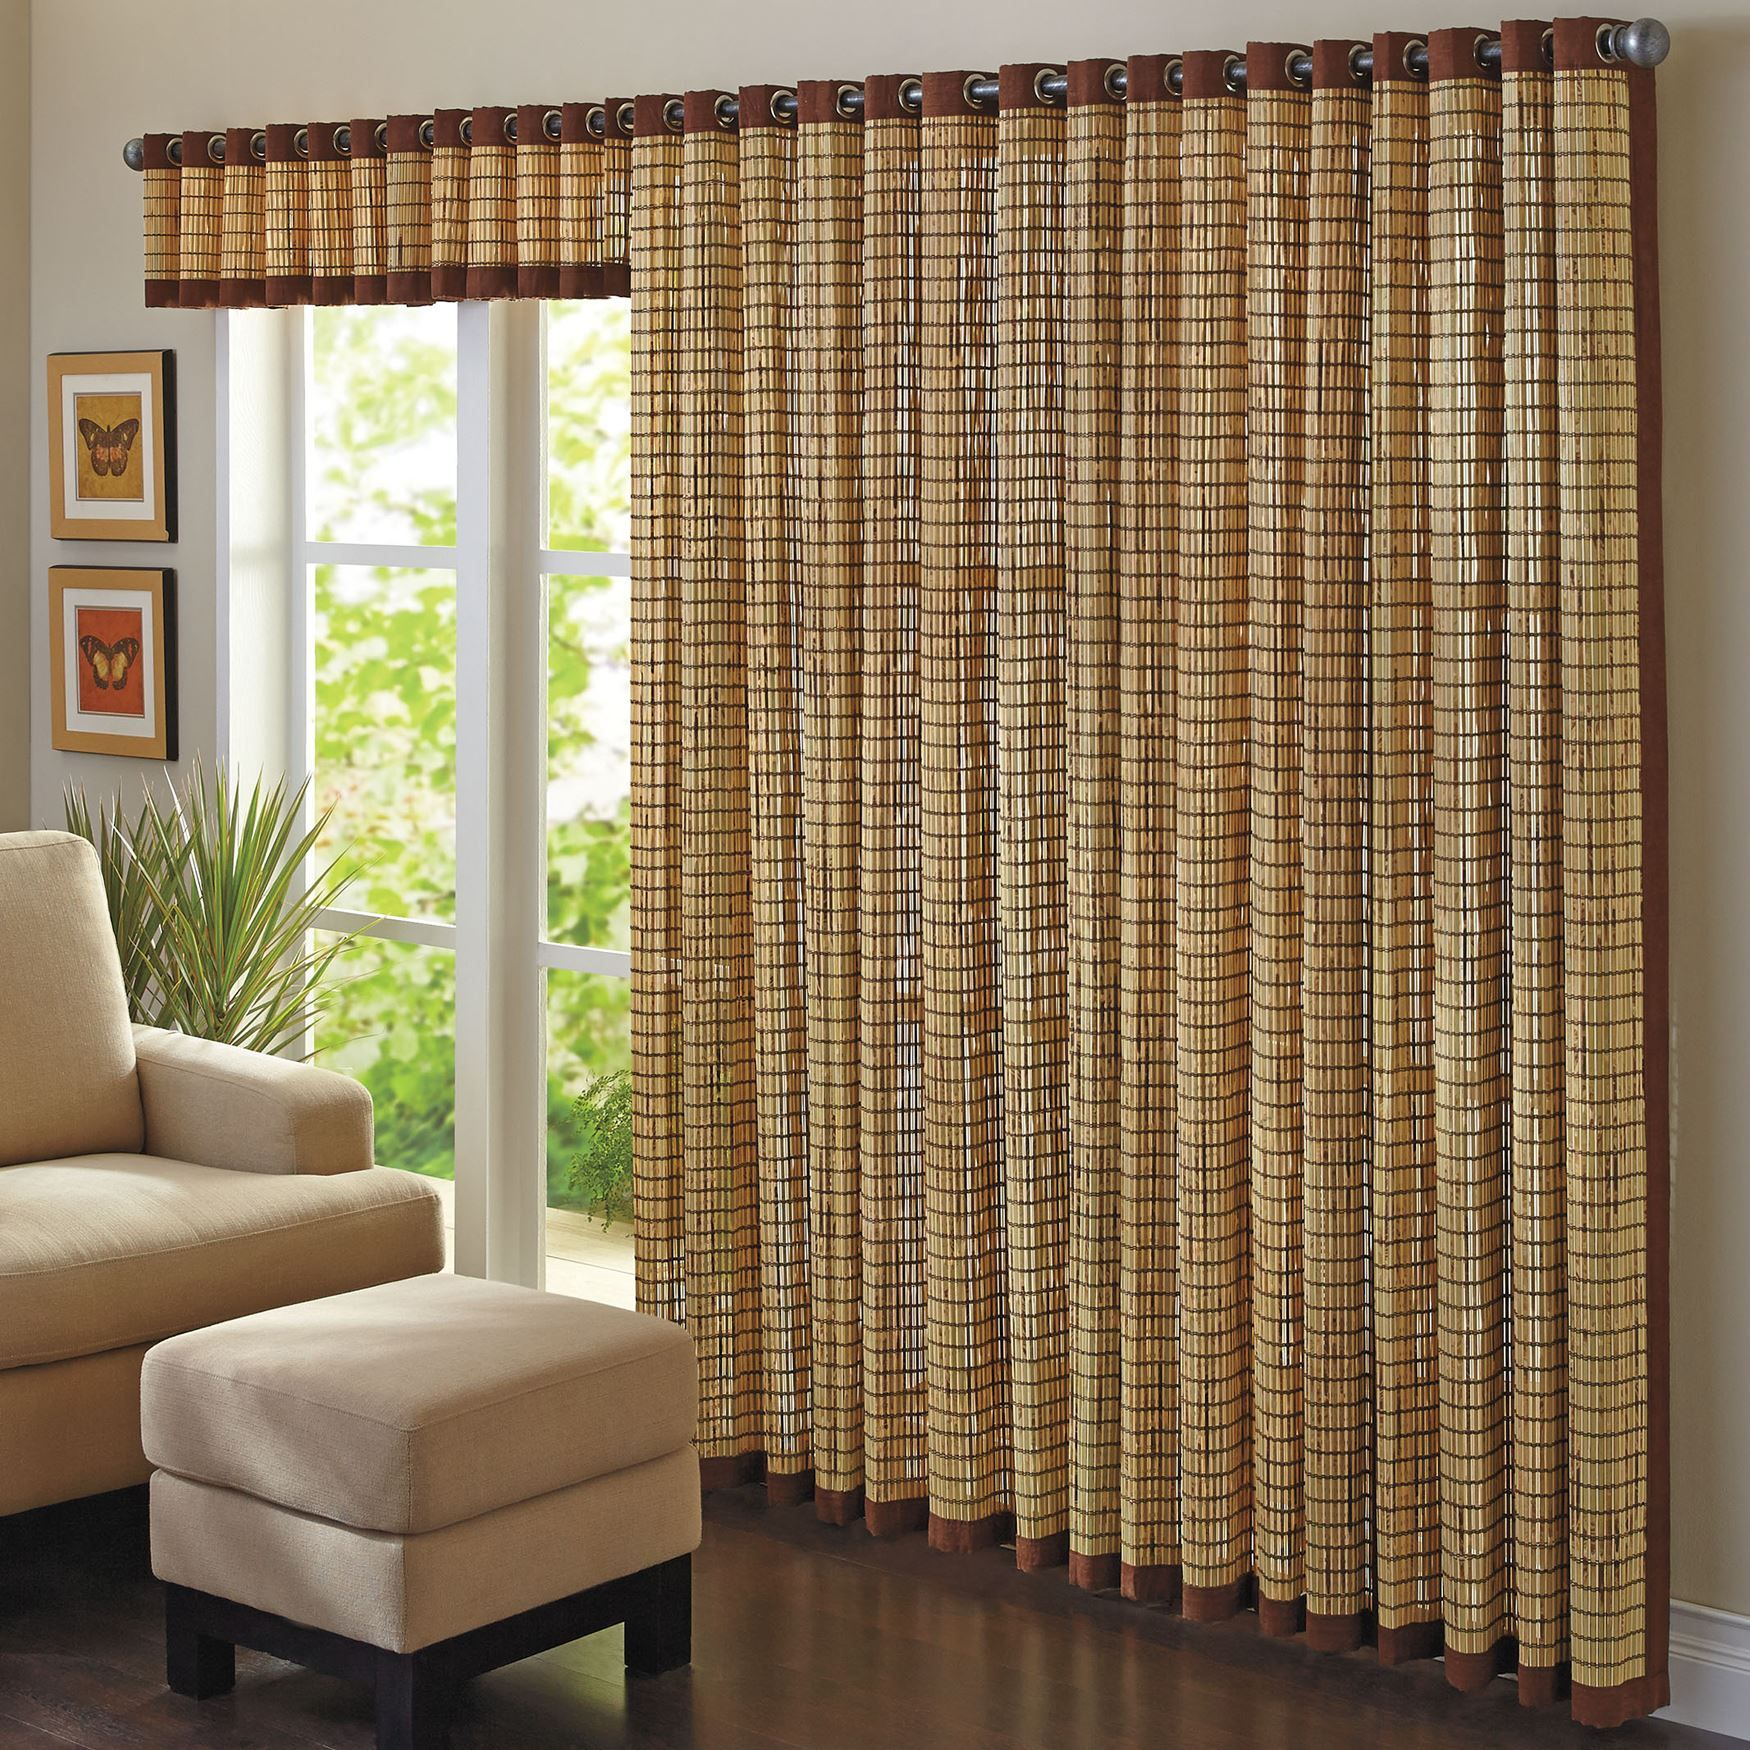 Bamboo Grommet Panel Valance Bamboo Curtains Outdoor Bamboo Curtains Curtains